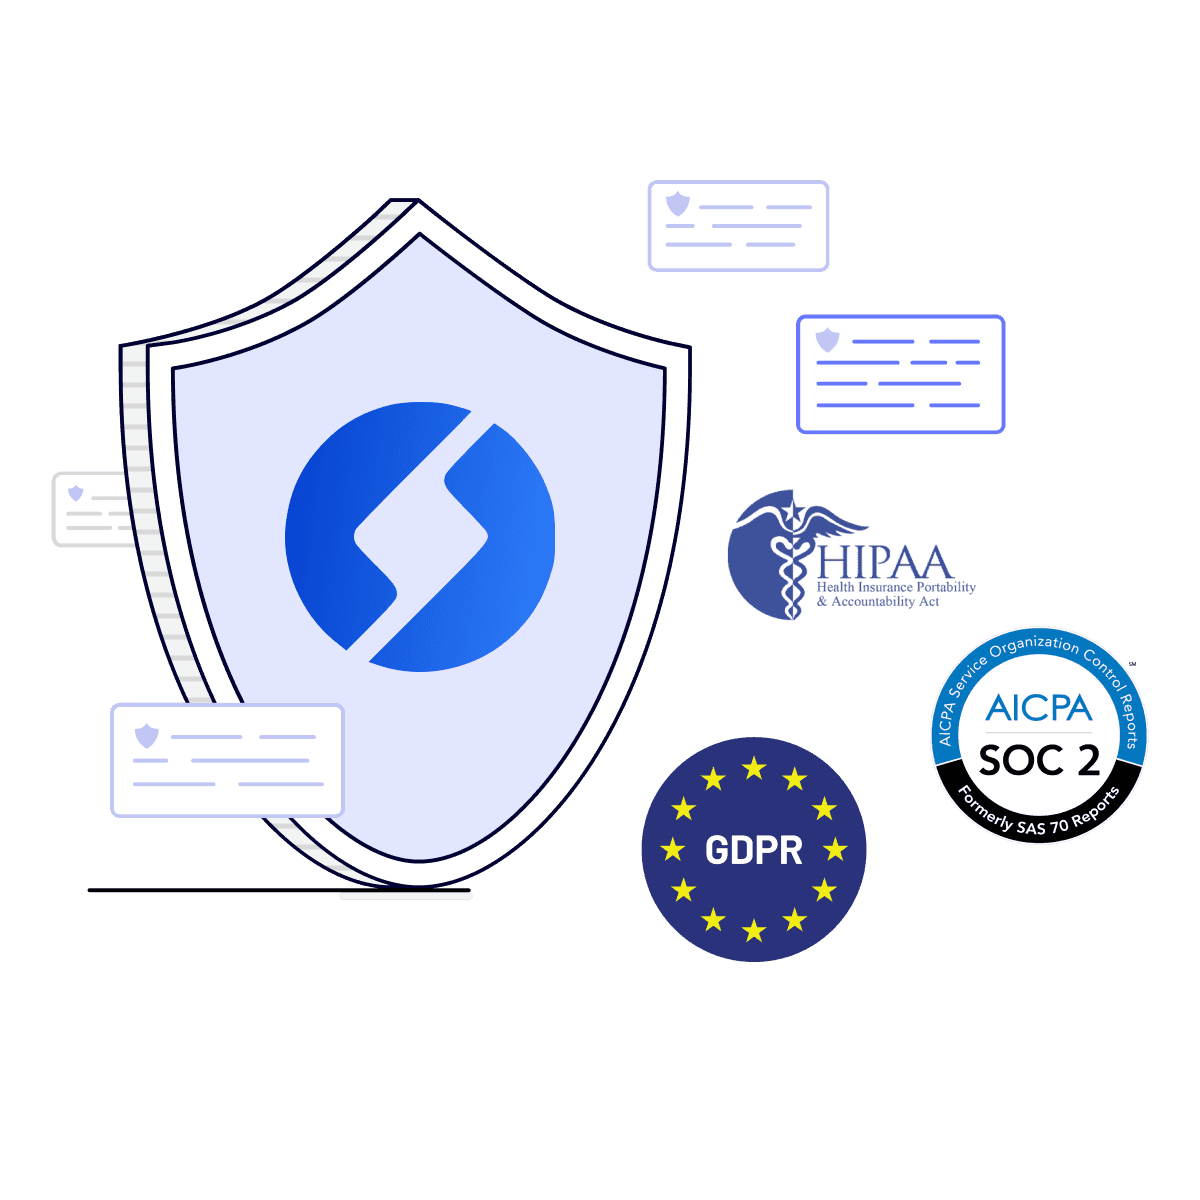 Samespace offers application security at the highest level, & GDPR and SOC 2 compliance is a given.